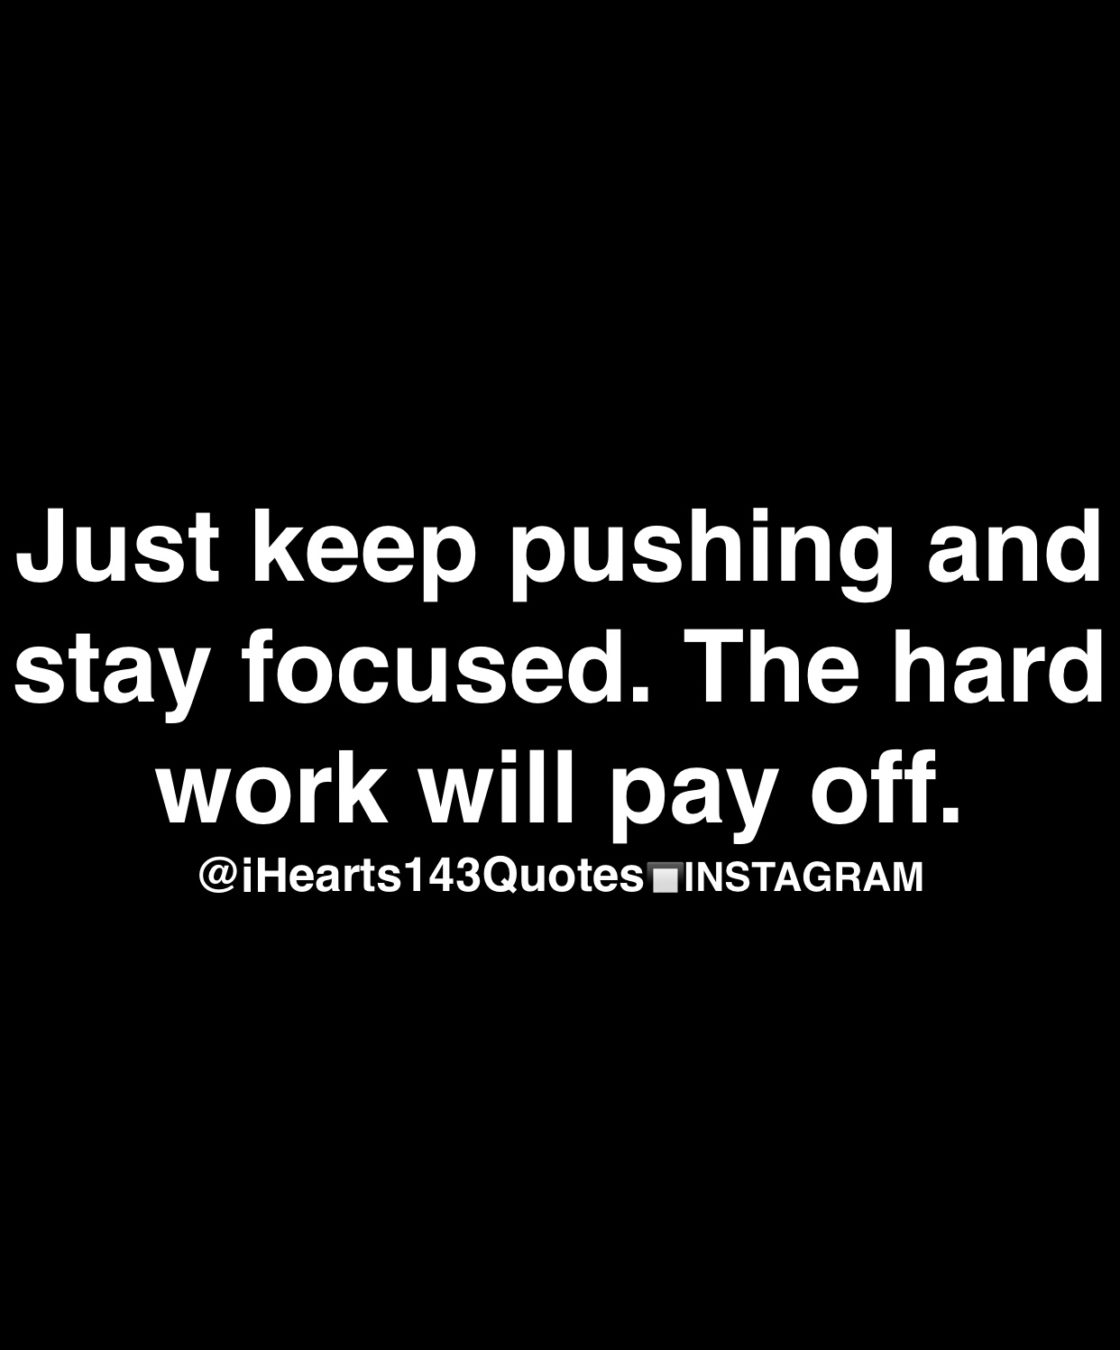 Stay Focused Quotes Daily Motivational Quotes  Ihearts143Quotes